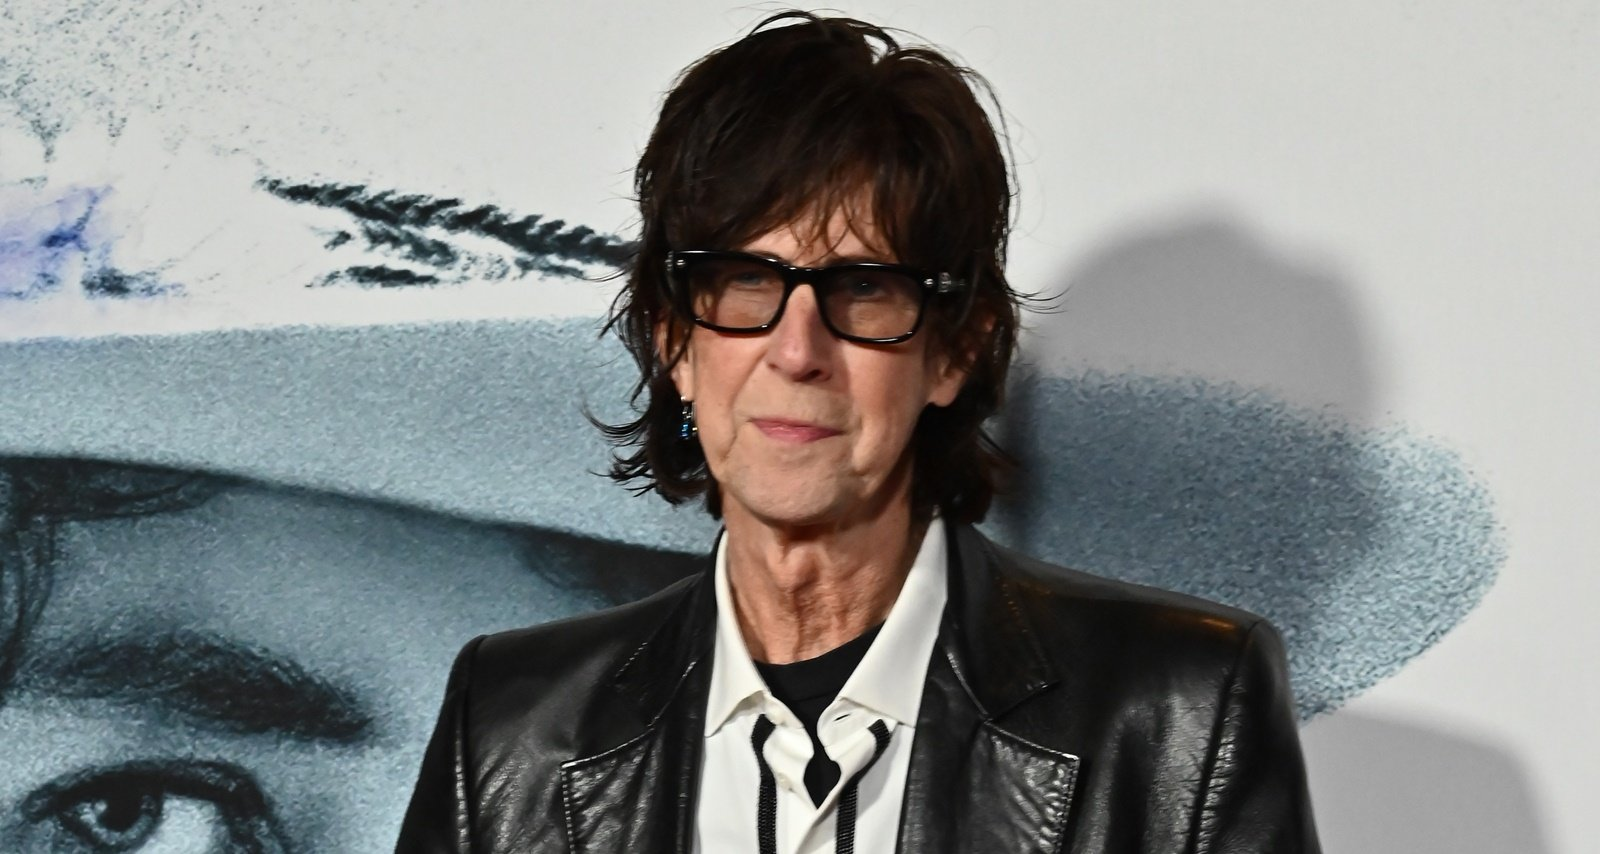 Ric Ocasek Net Worth 2019 at the time of his death